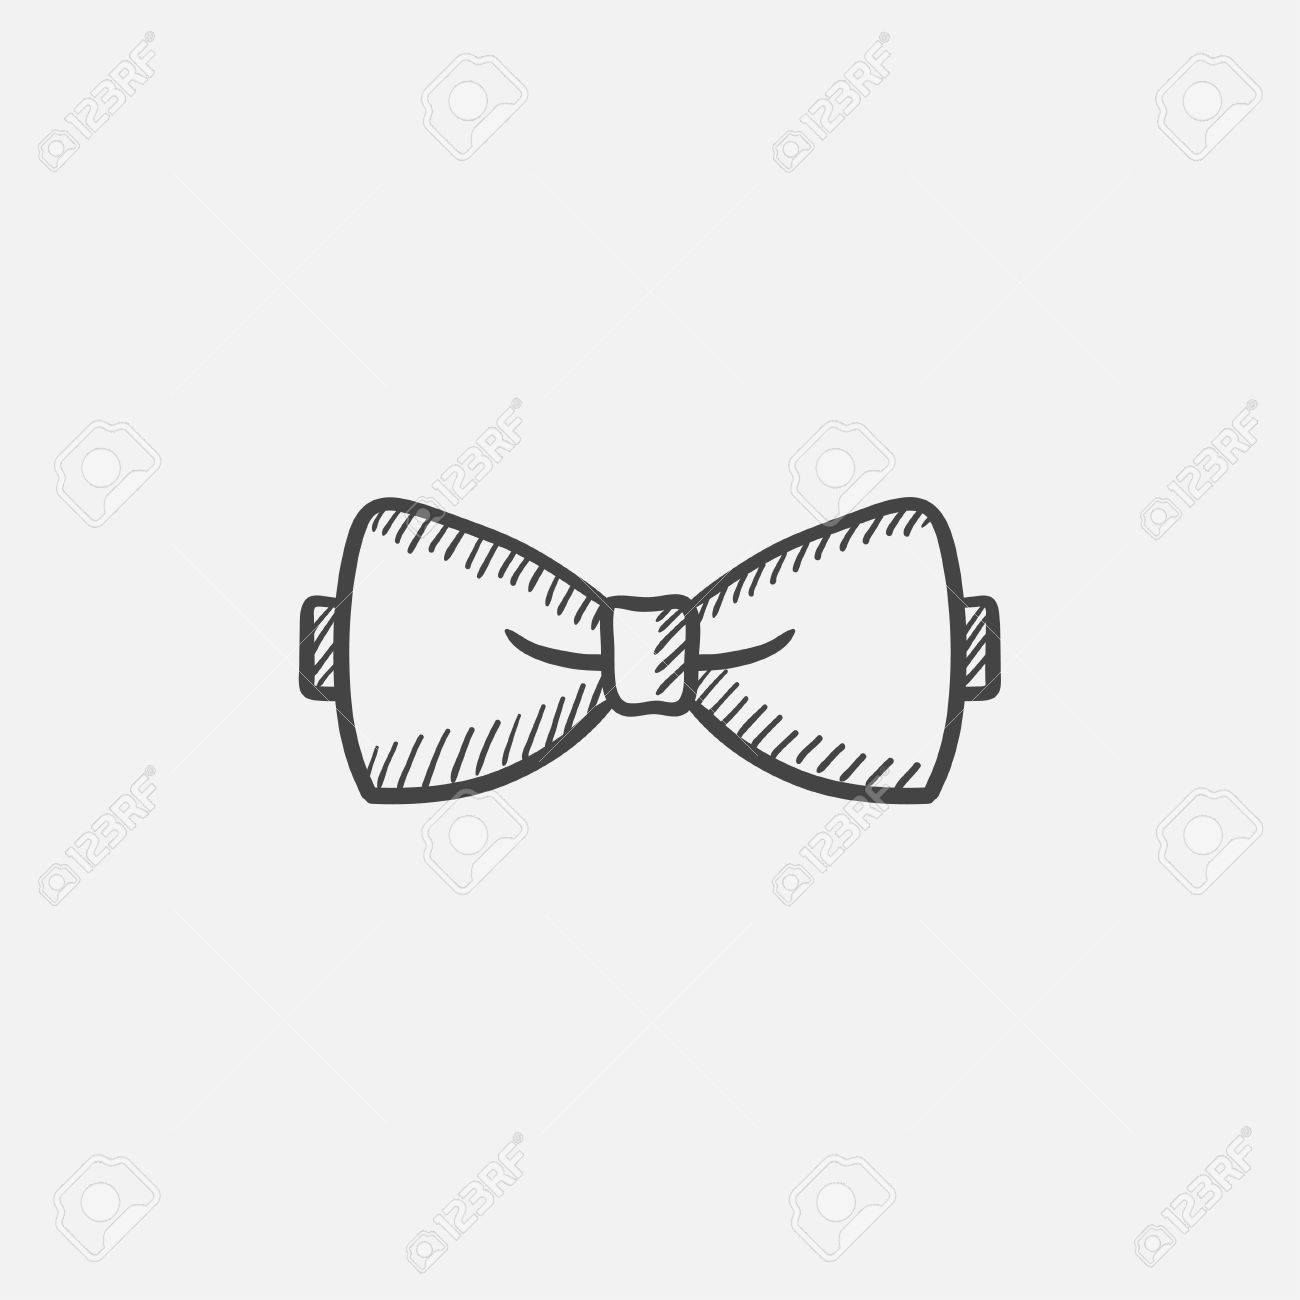 Bow Tie Sketch Icon For Web Mobile And Infographics Hand Drawn Royalty Free Cliparts Vectors And Stock Illustration Image 62054115